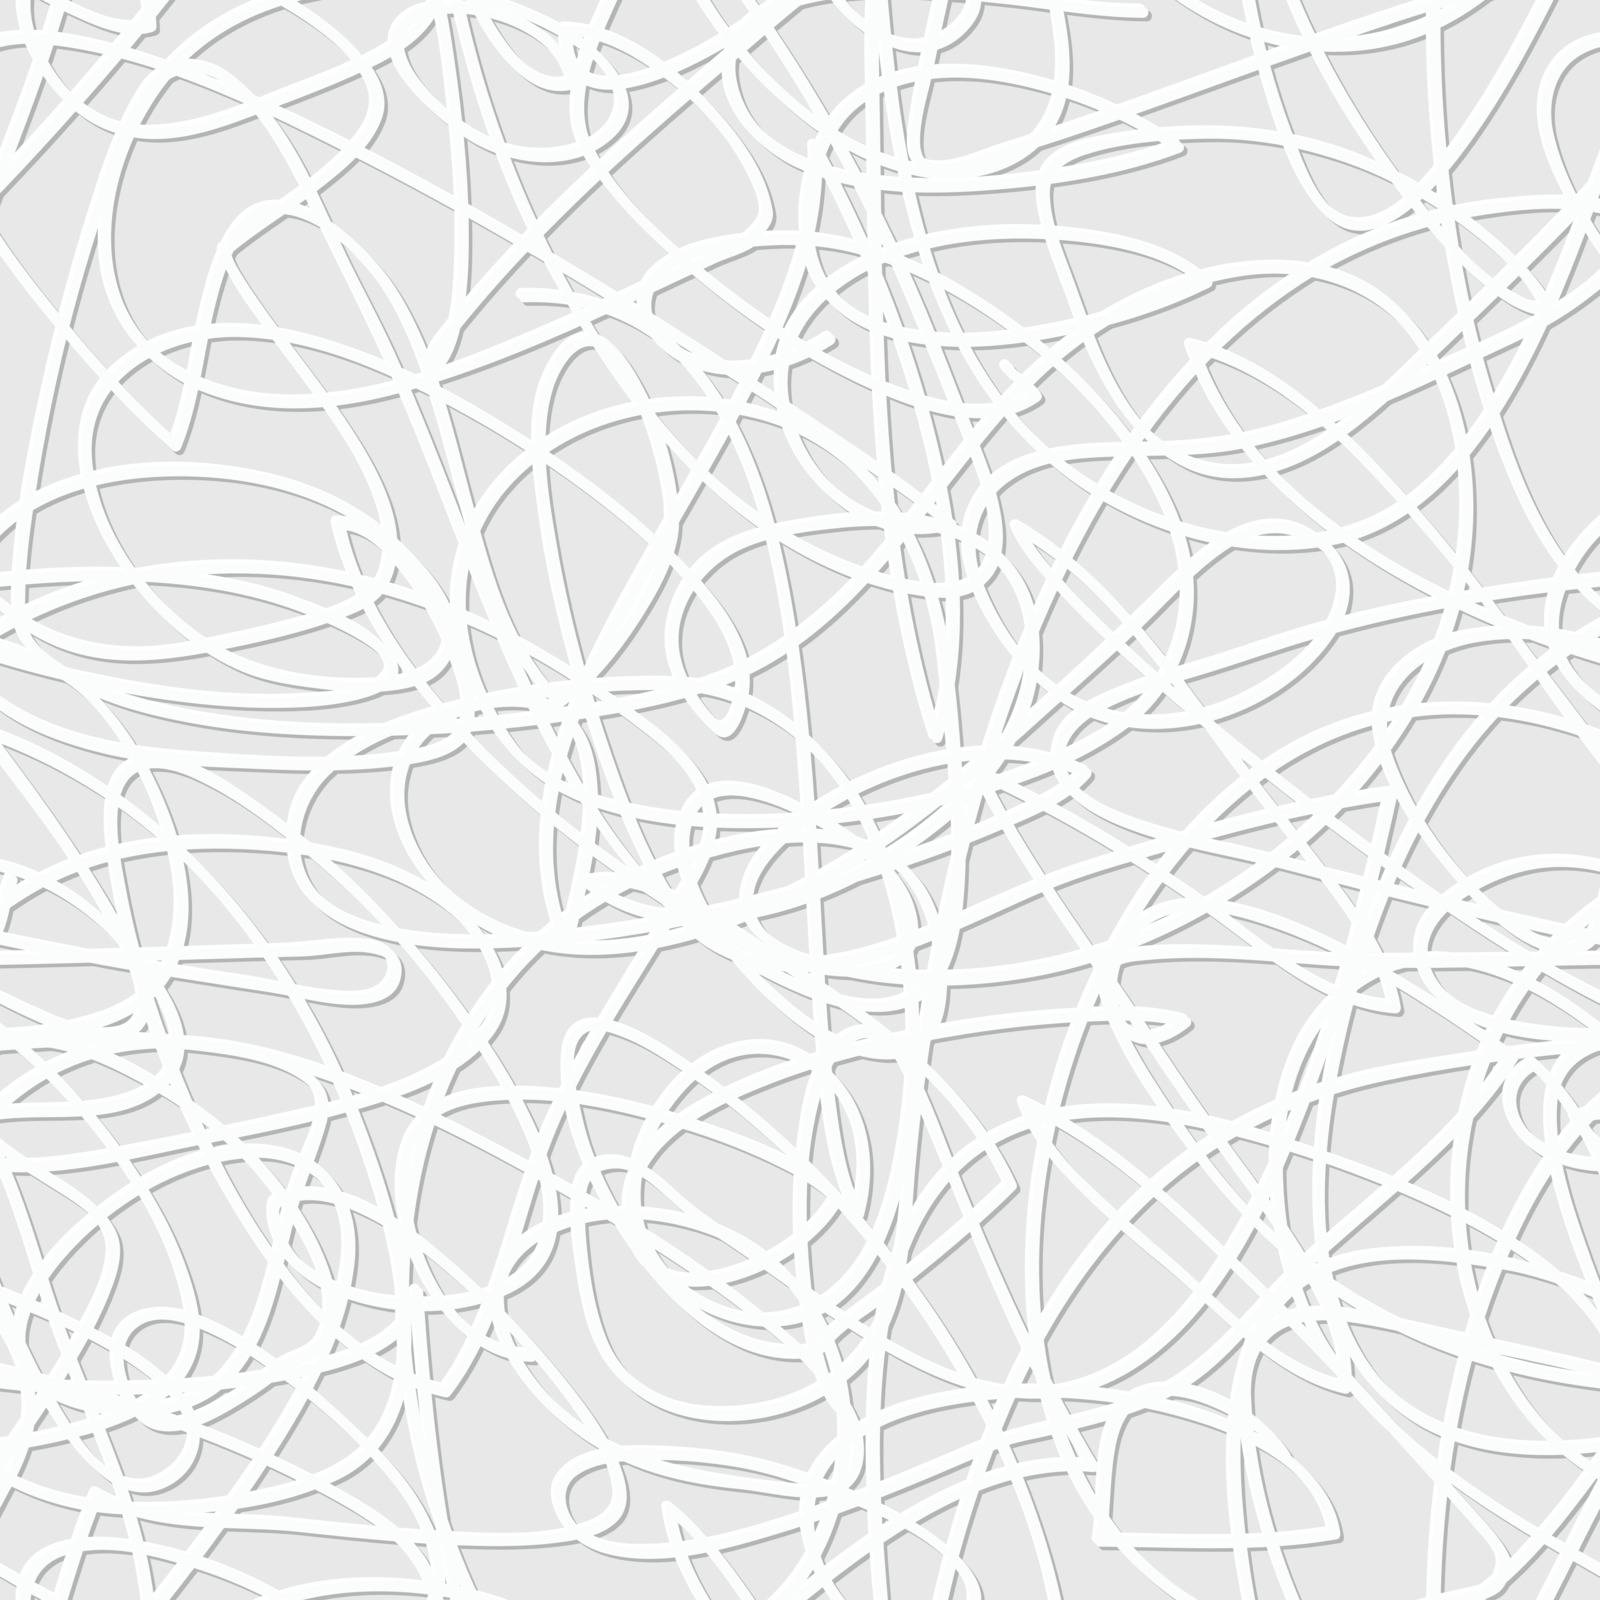 Sketch lines in vintage style, vector seamless pattern